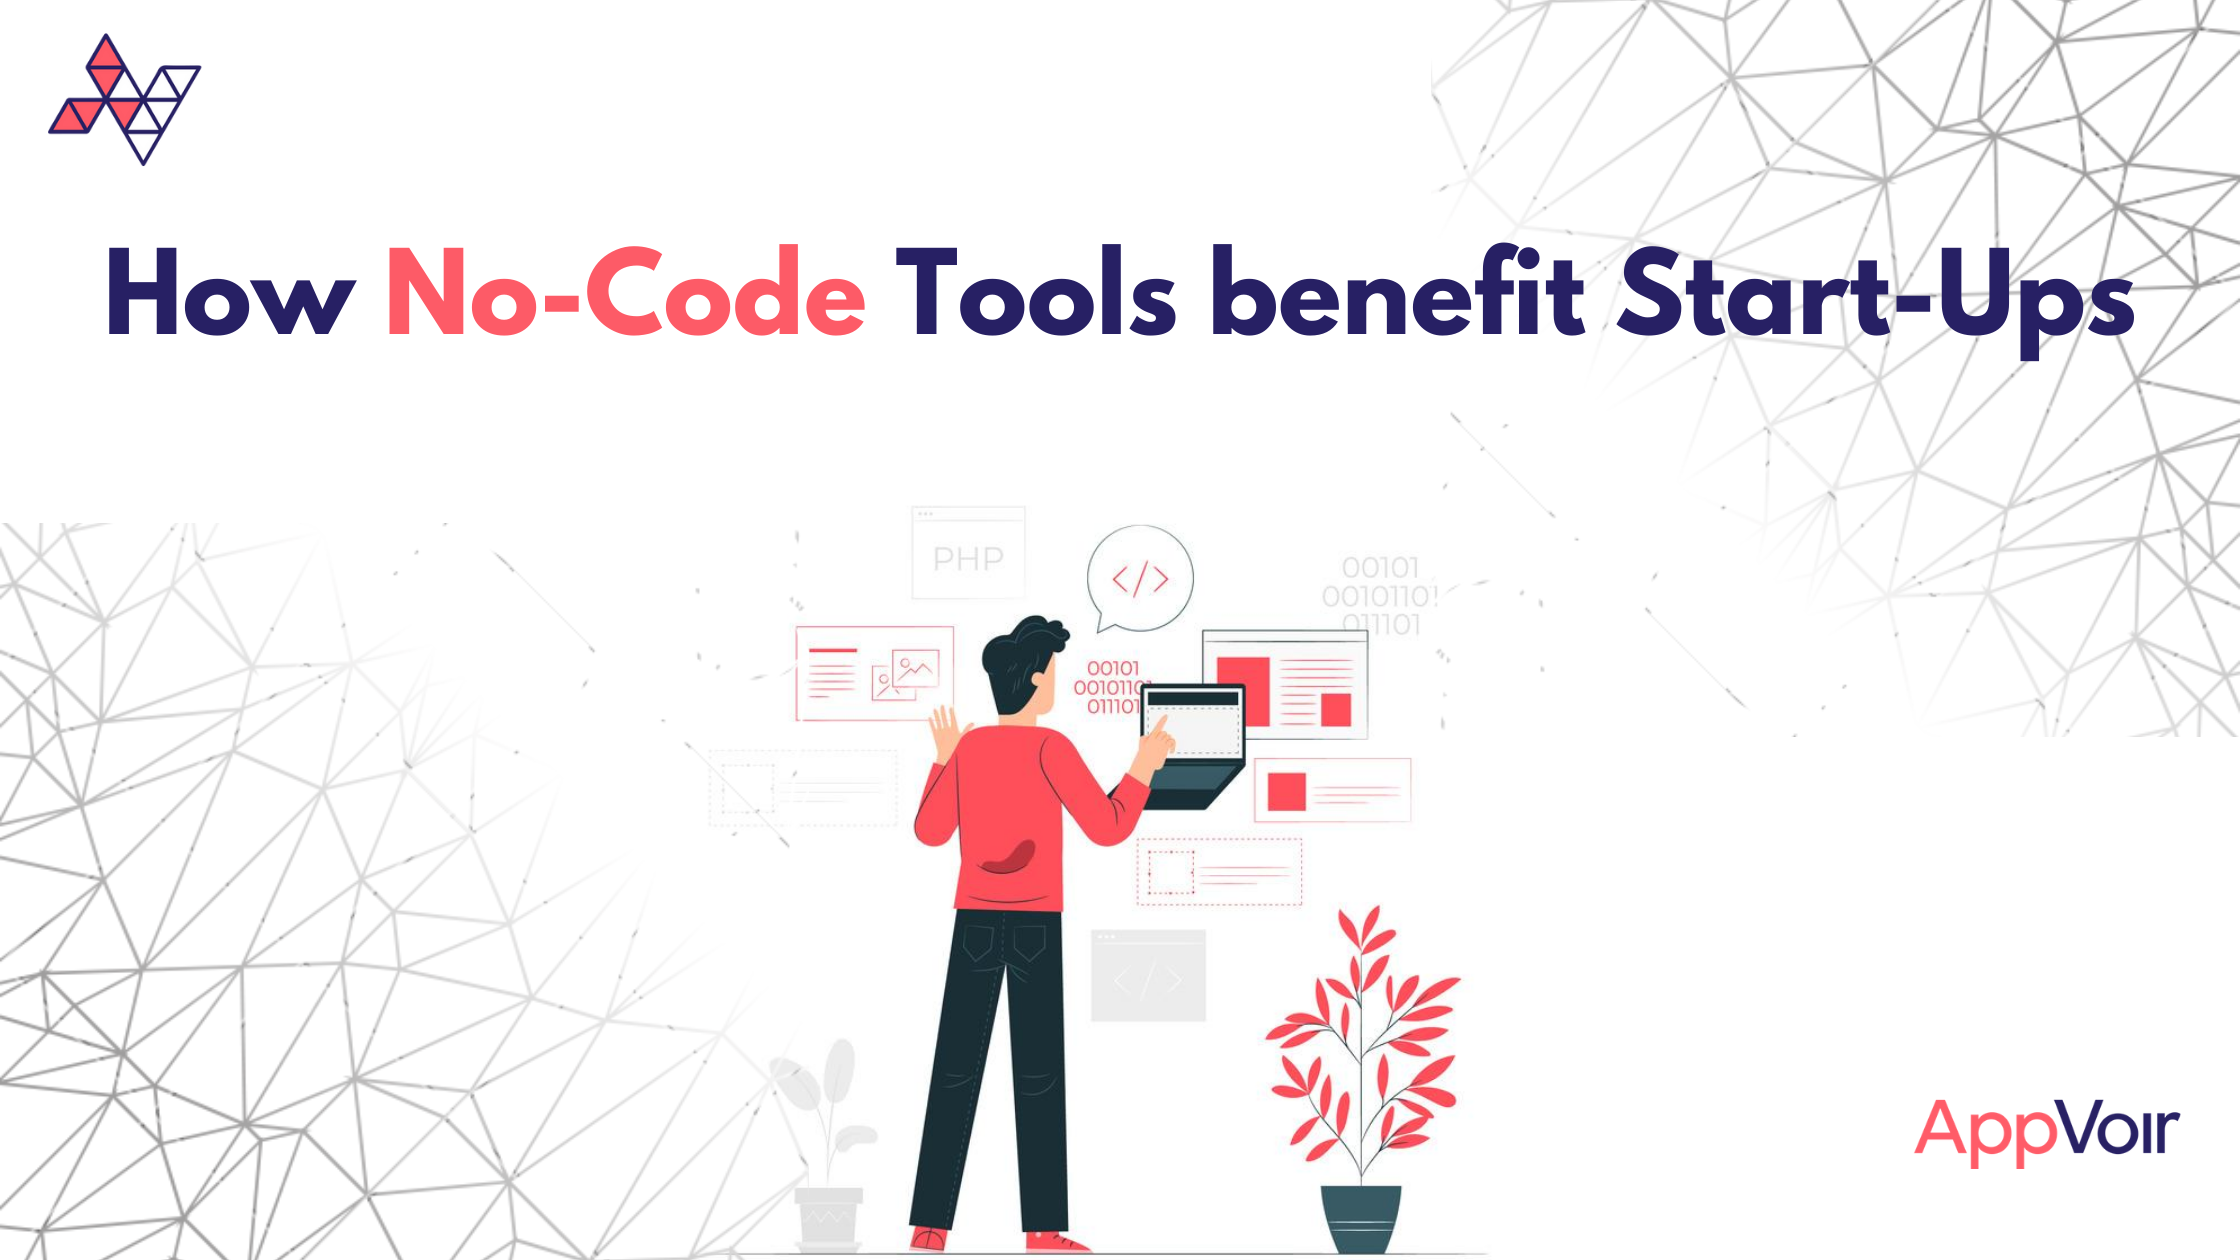 How No-Code Tools help Start Ups